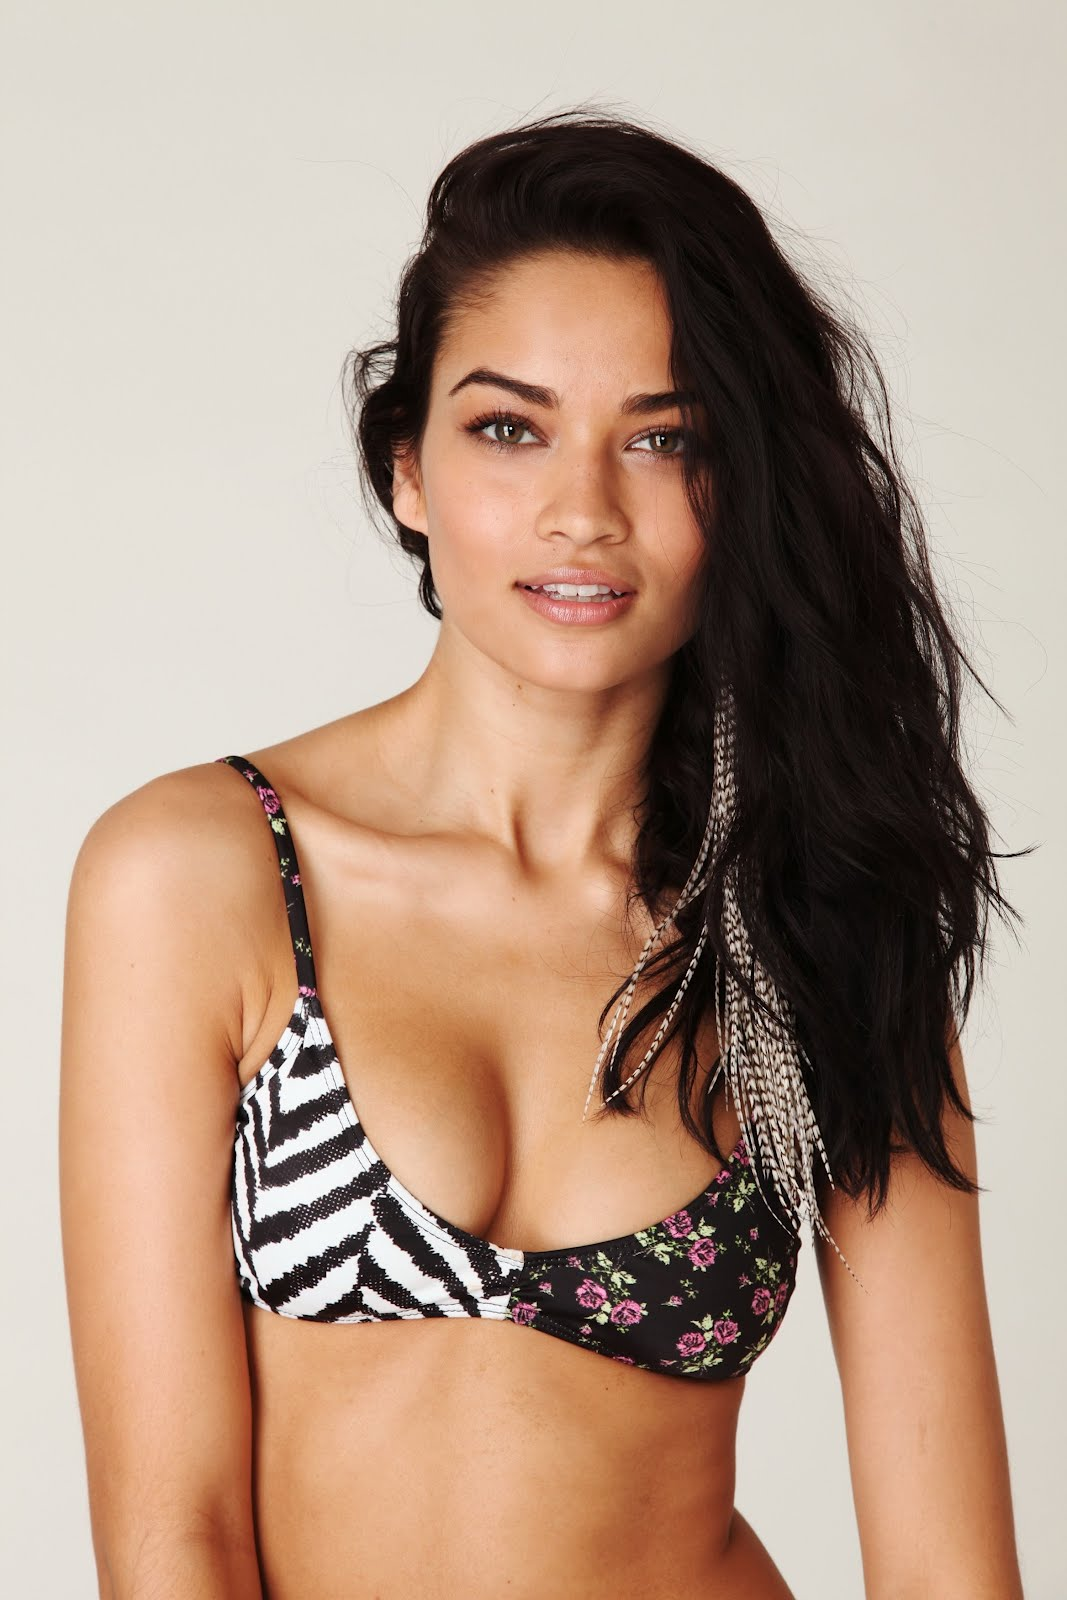 Ass Shanina Shaik nude (75 foto and video), Topless, Leaked, Feet, braless 2019